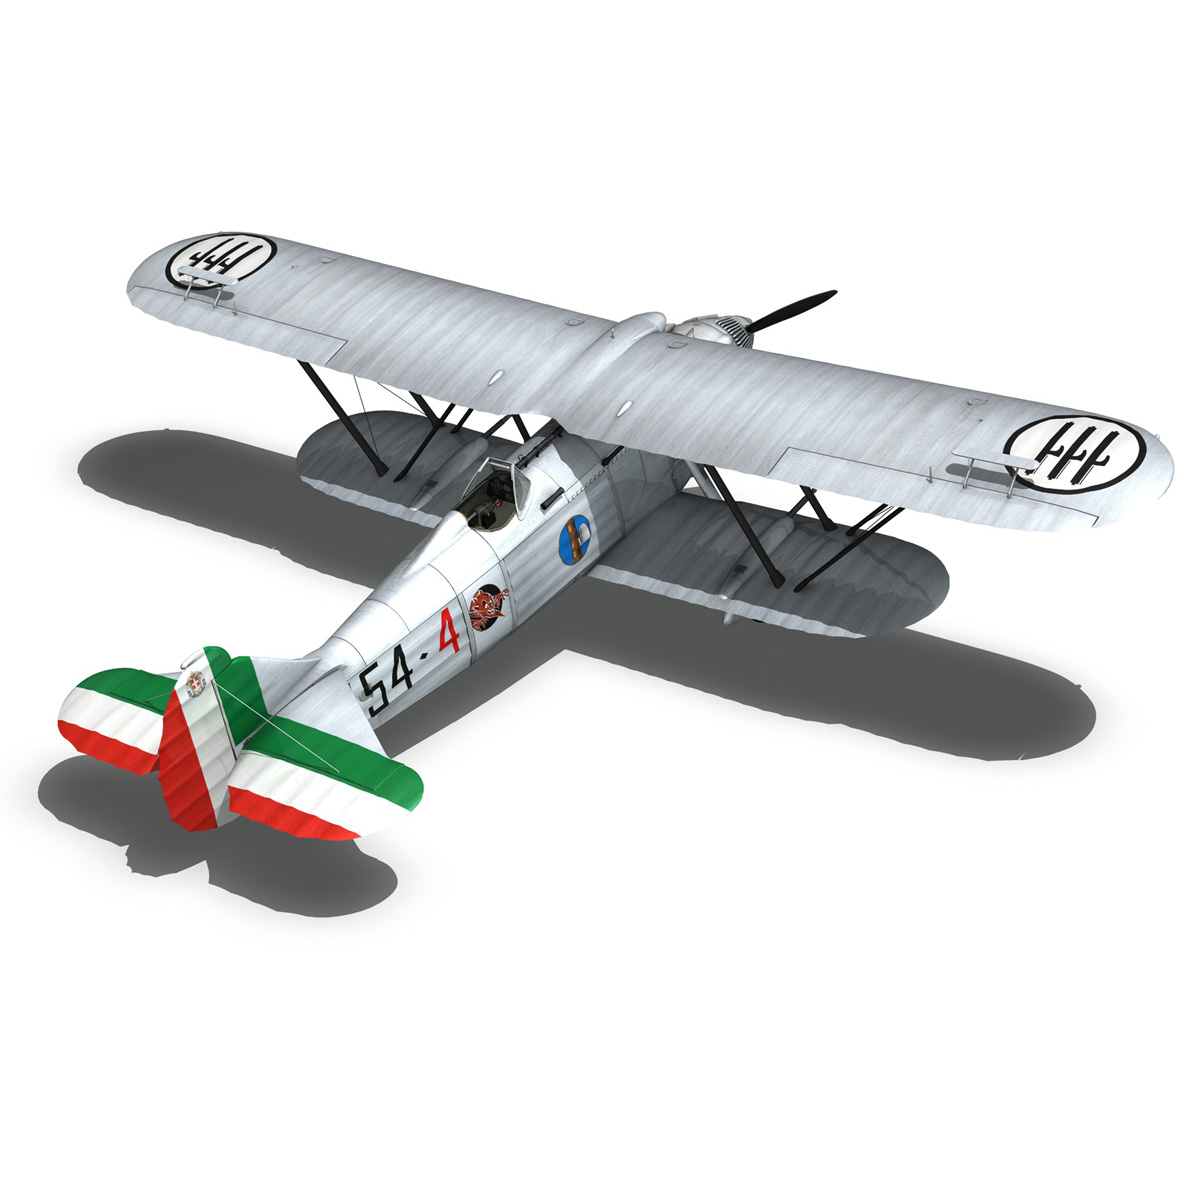 fiat cr.32 – italy airforce – 154 squadriglia 3d model fbx c4d lwo obj 268144